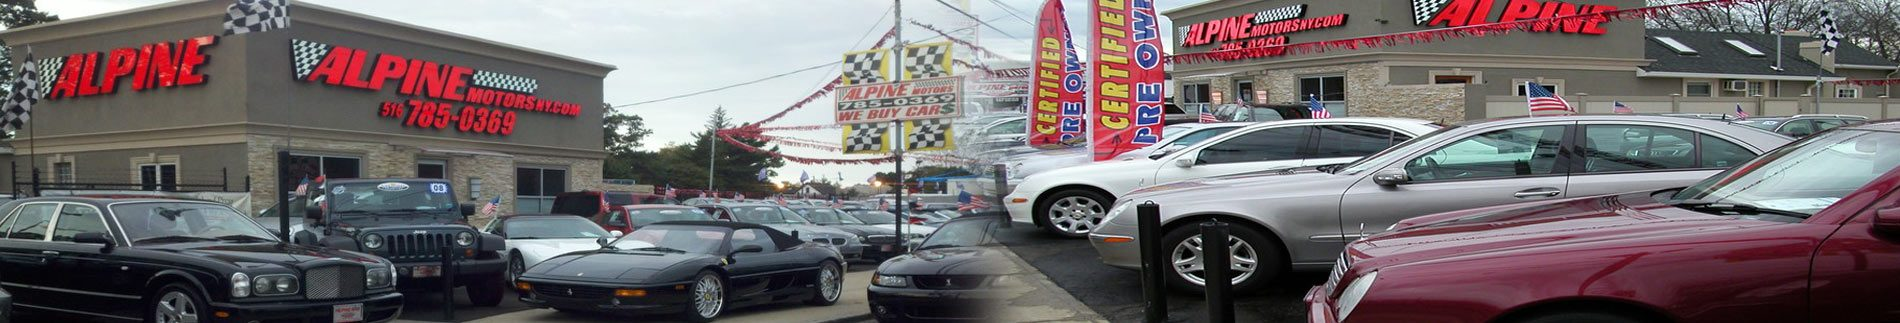 Used car dealer in Wantagh, Long Island, Nassau, Suffolk, NY ...